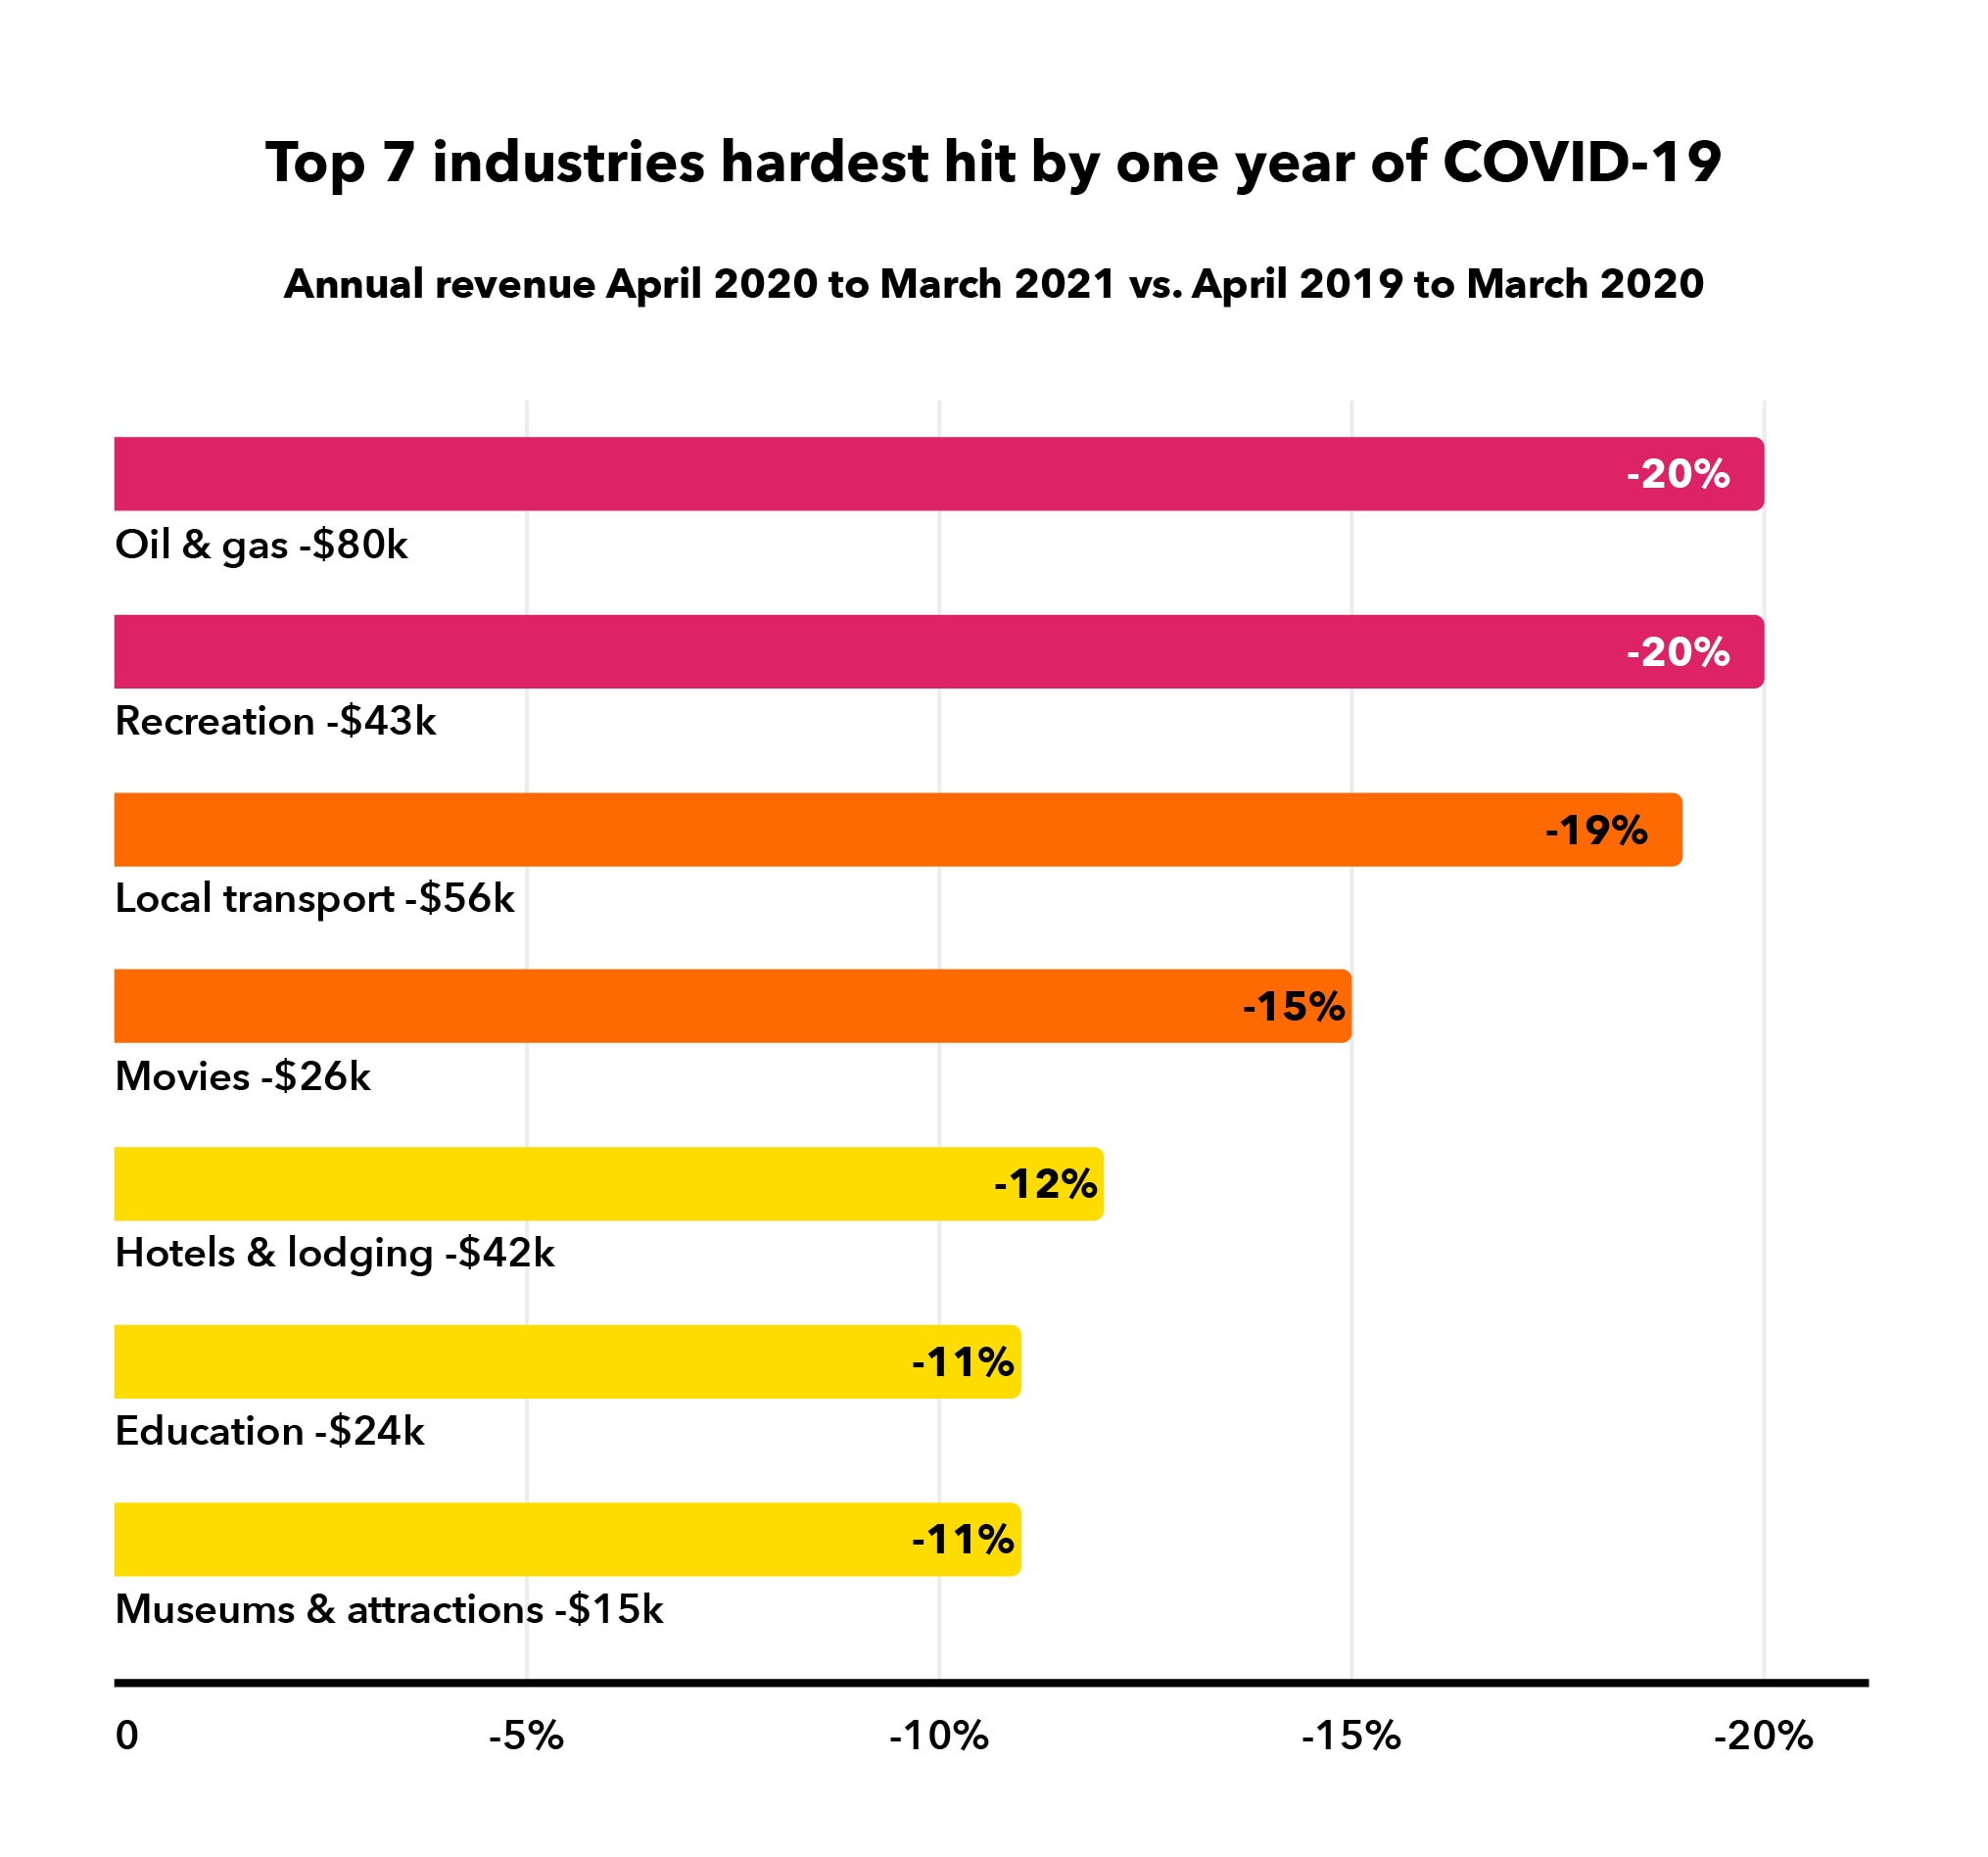 Top 7 industries hardest hit by COVID-19